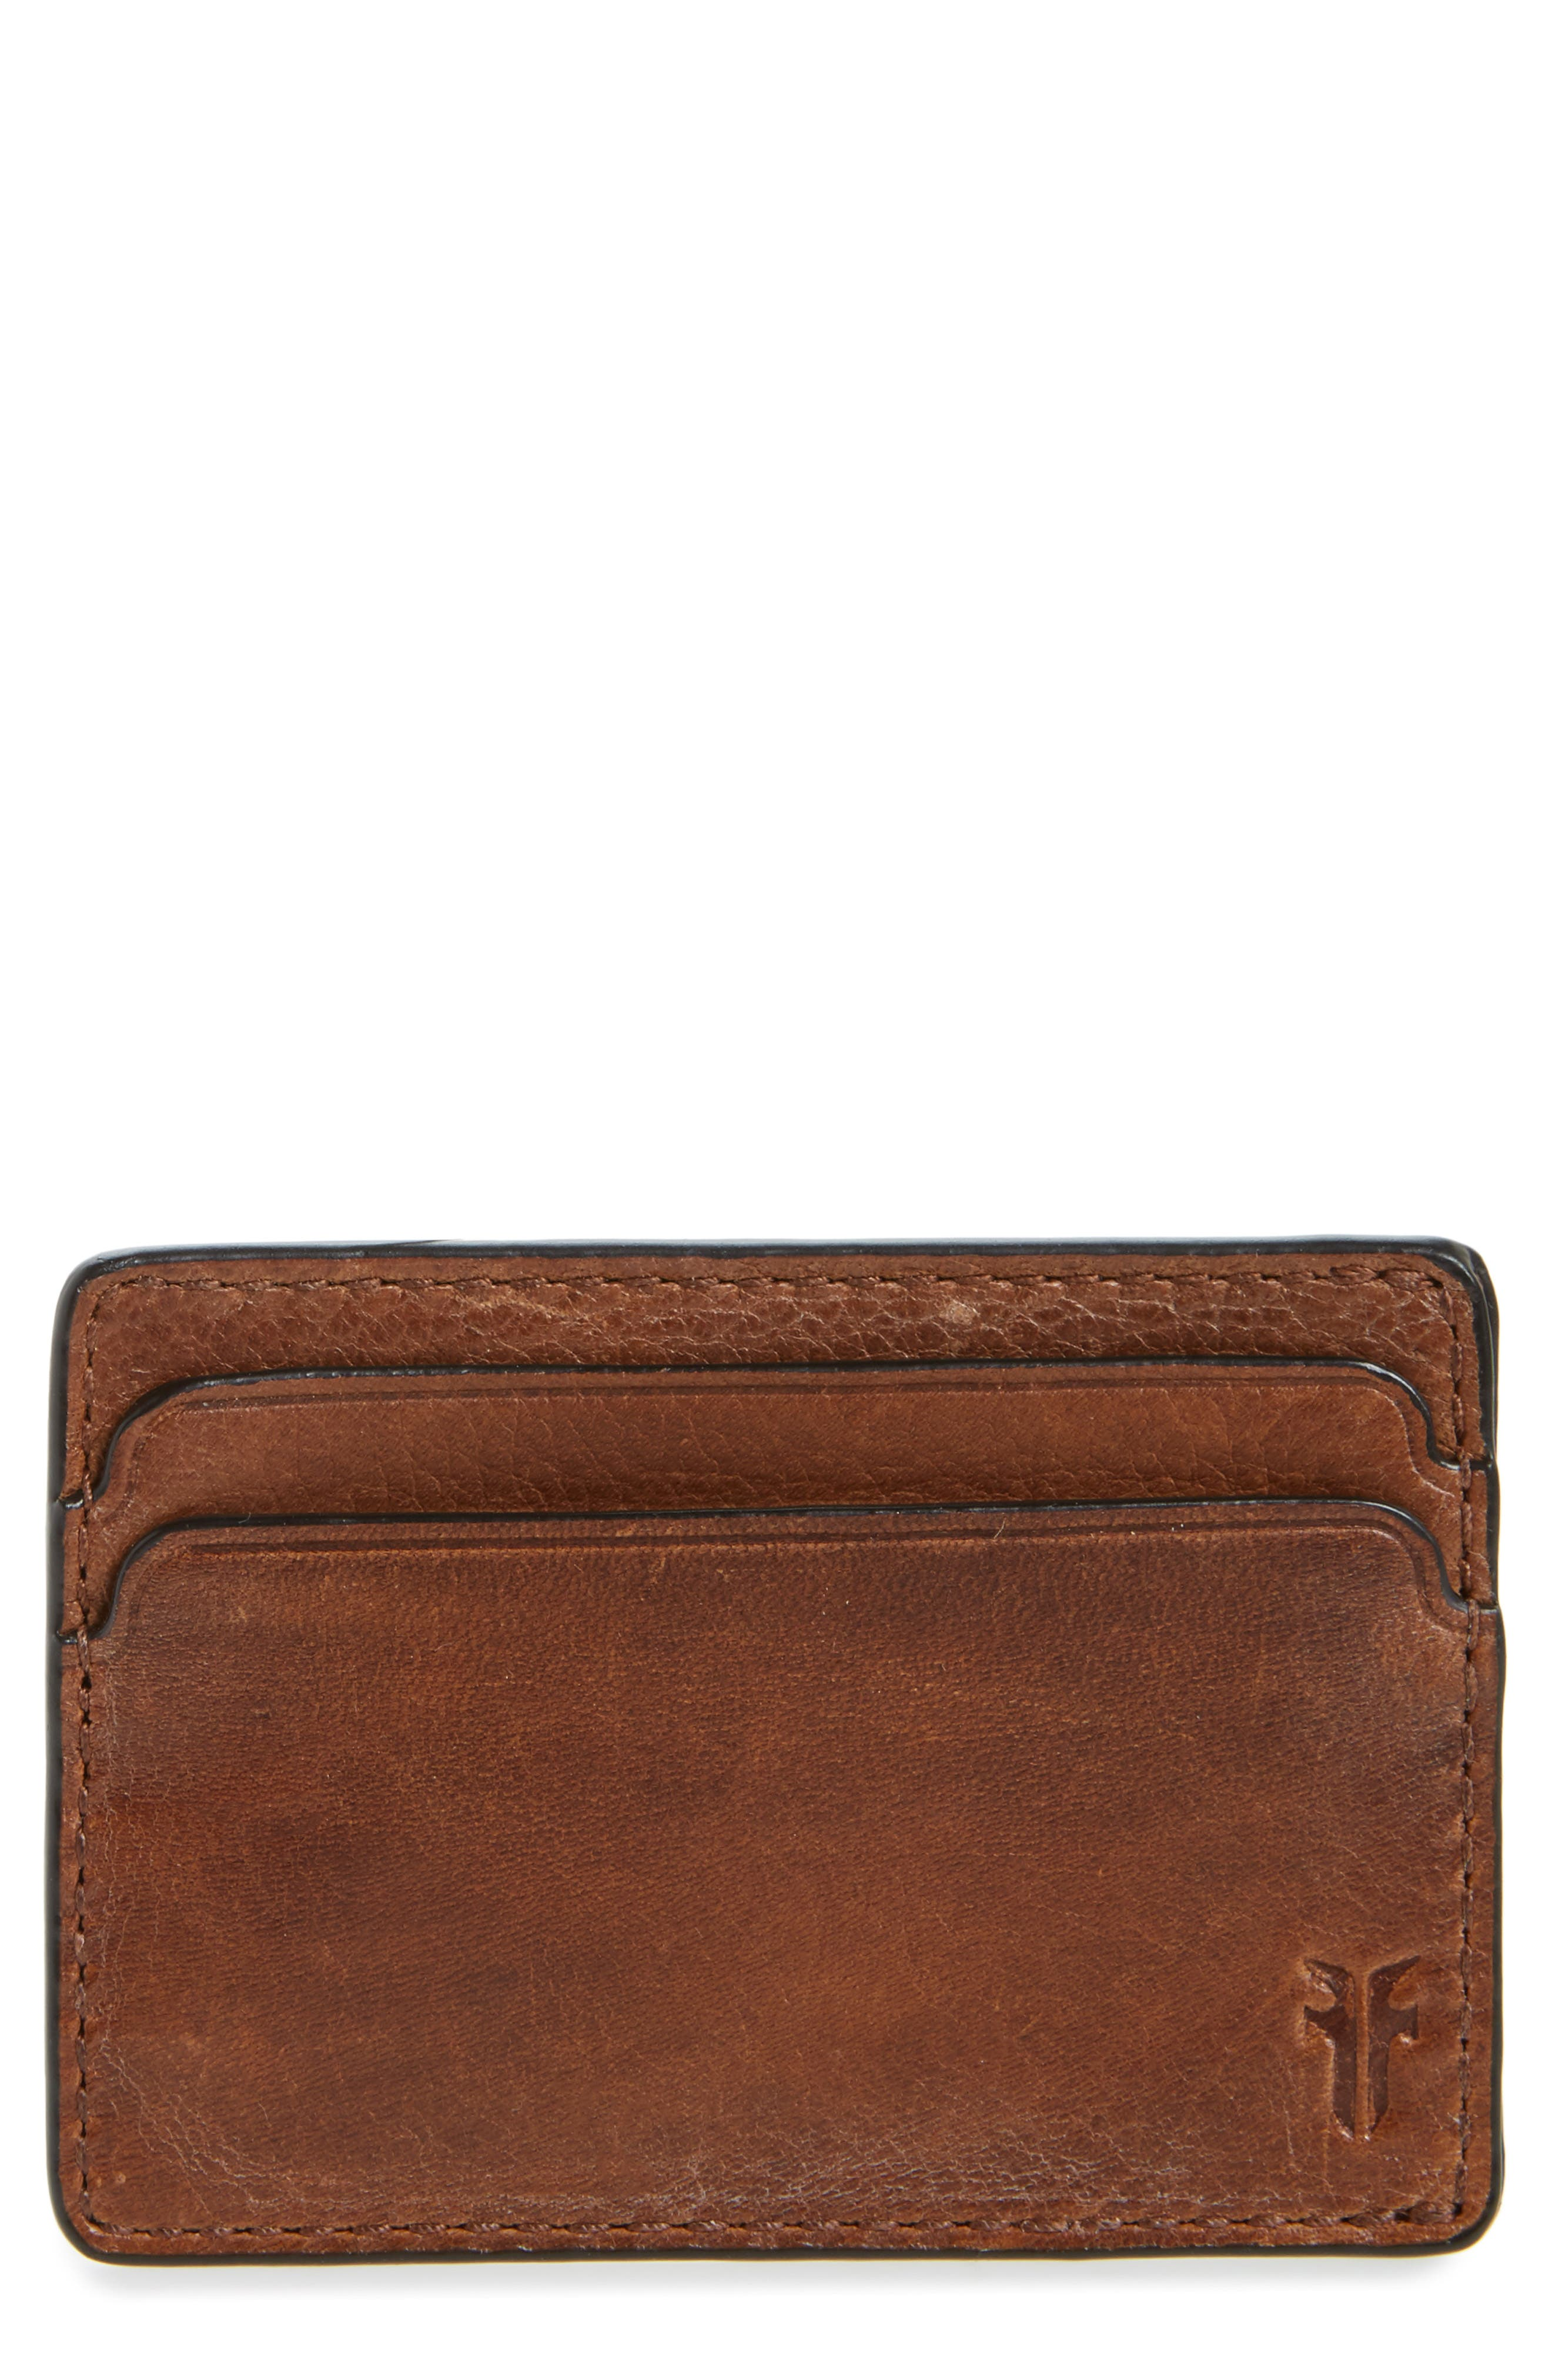 Oliver Leather Card Case,                         Main,                         color, 235